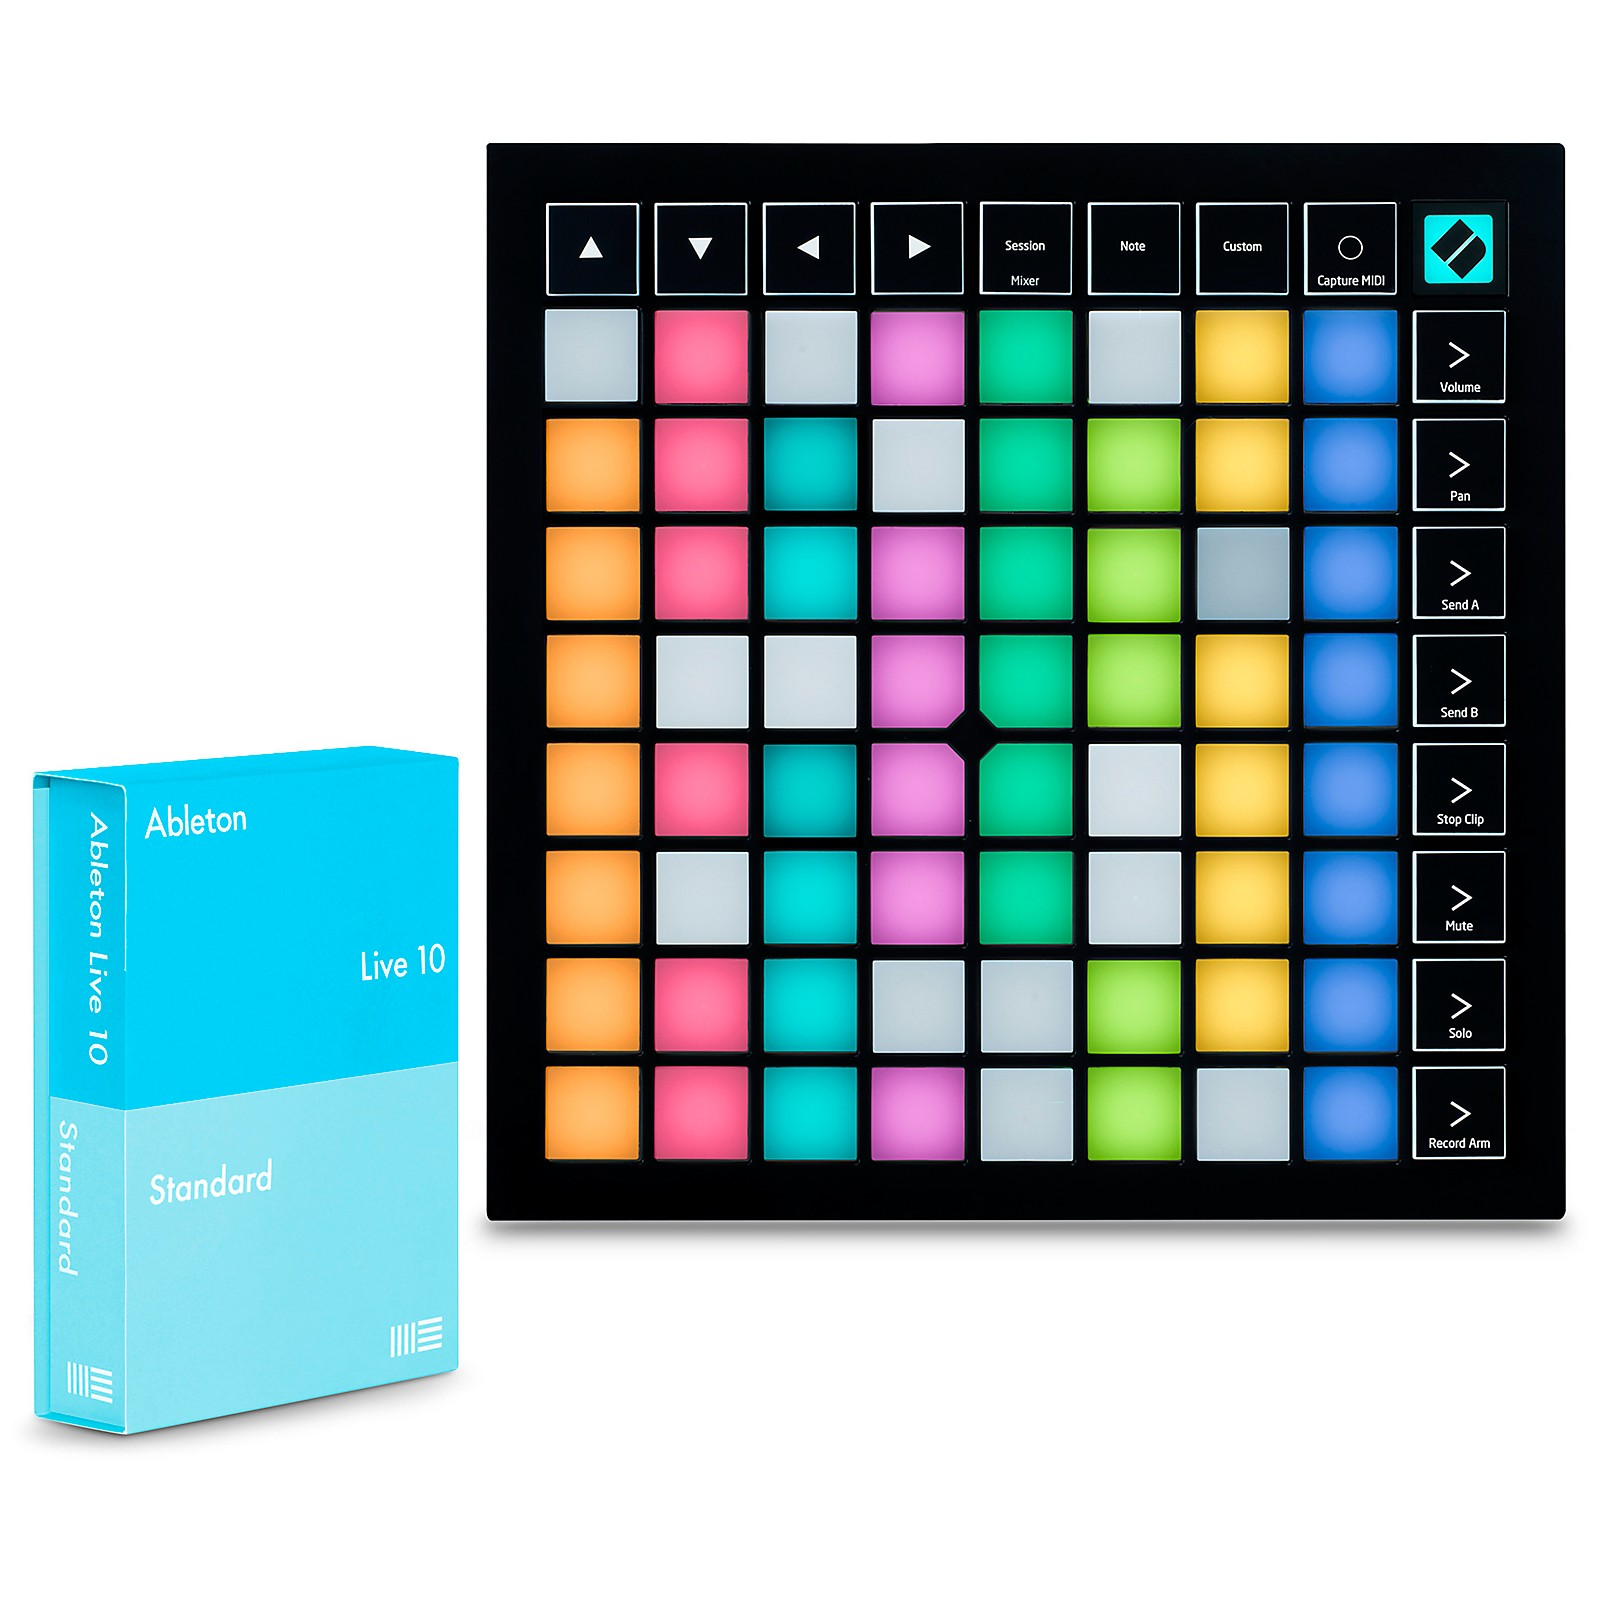 Novation Launchpad X With Ableton Live 10 Standard